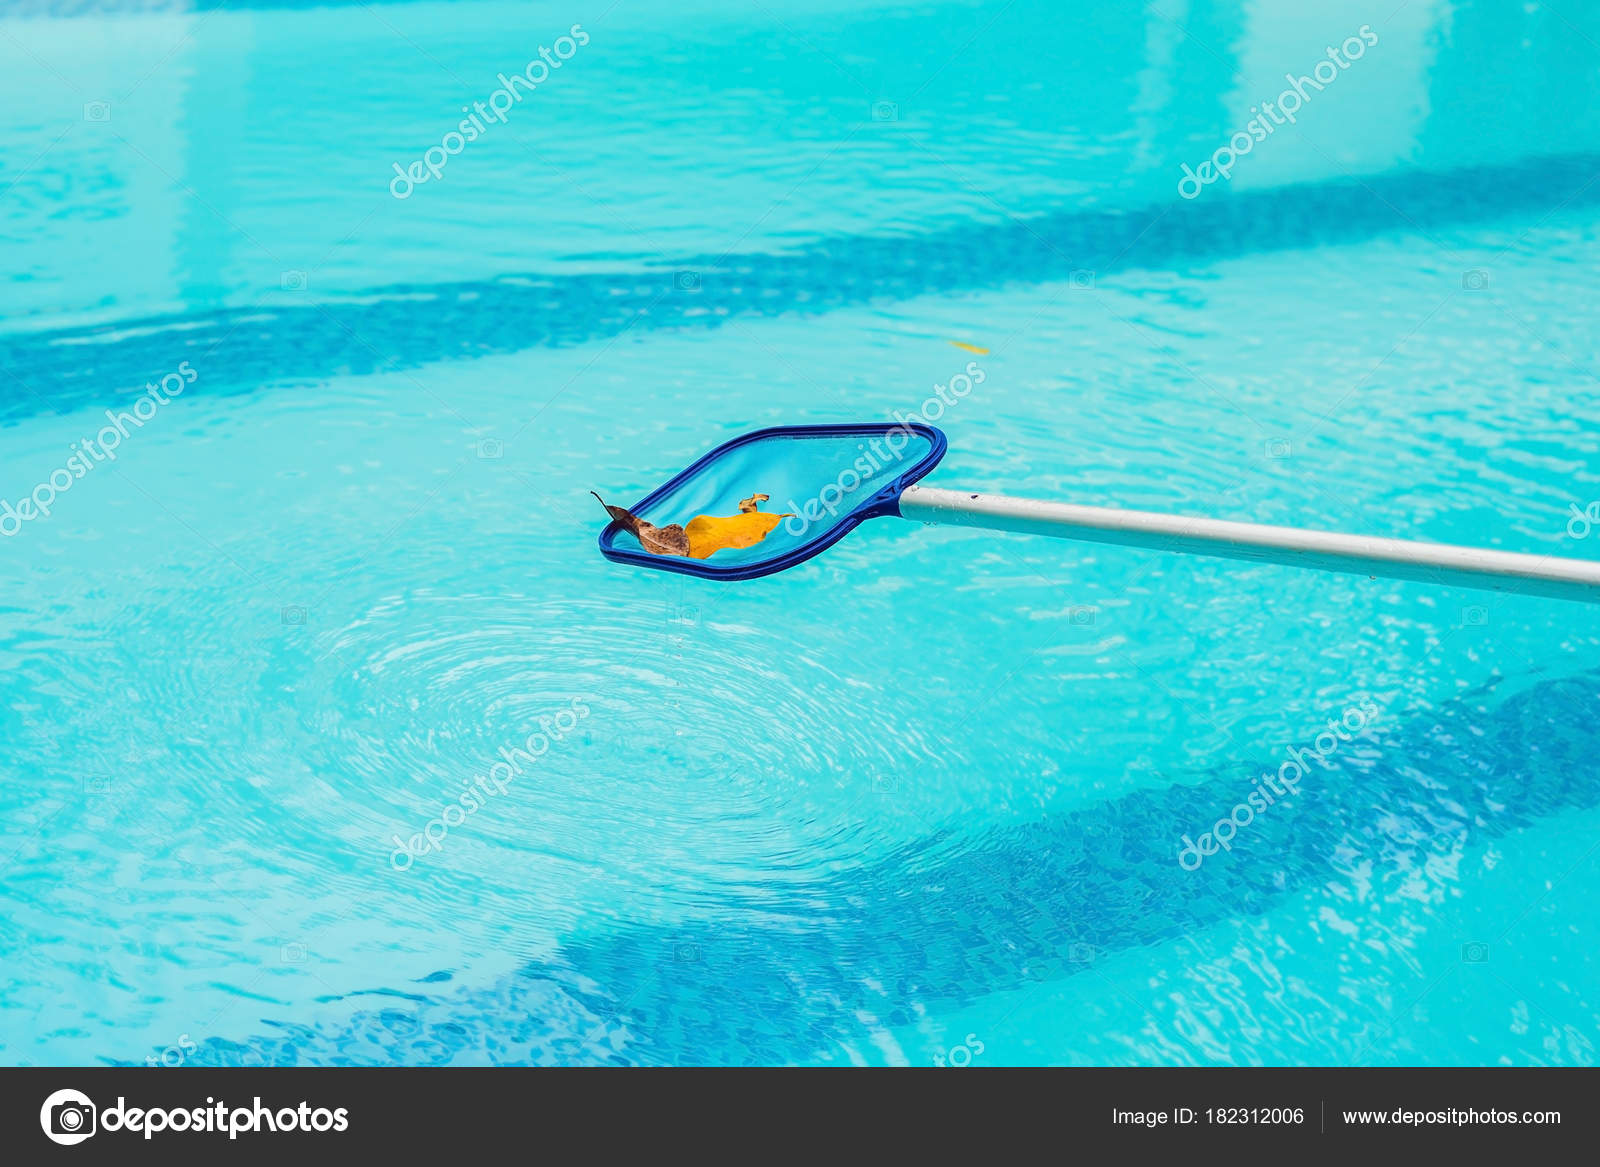 Cleaning Swimming Pool Cleaning Net Morning — Stock Photo ...